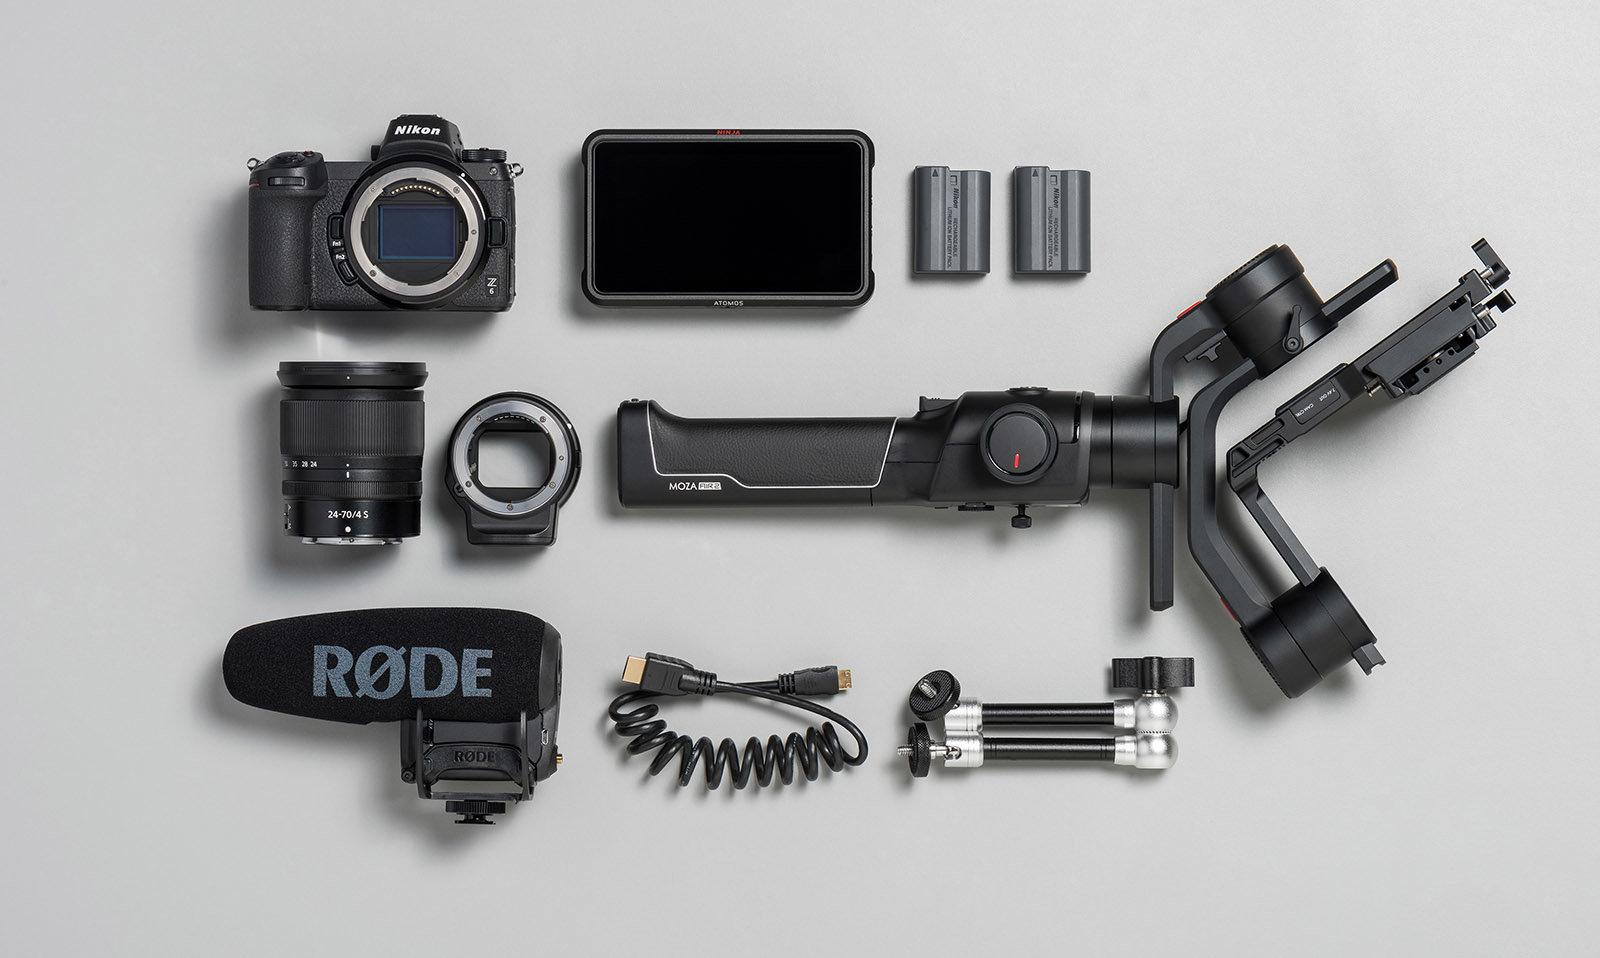 Canon, Nikon, and the future of mirrorless cameras